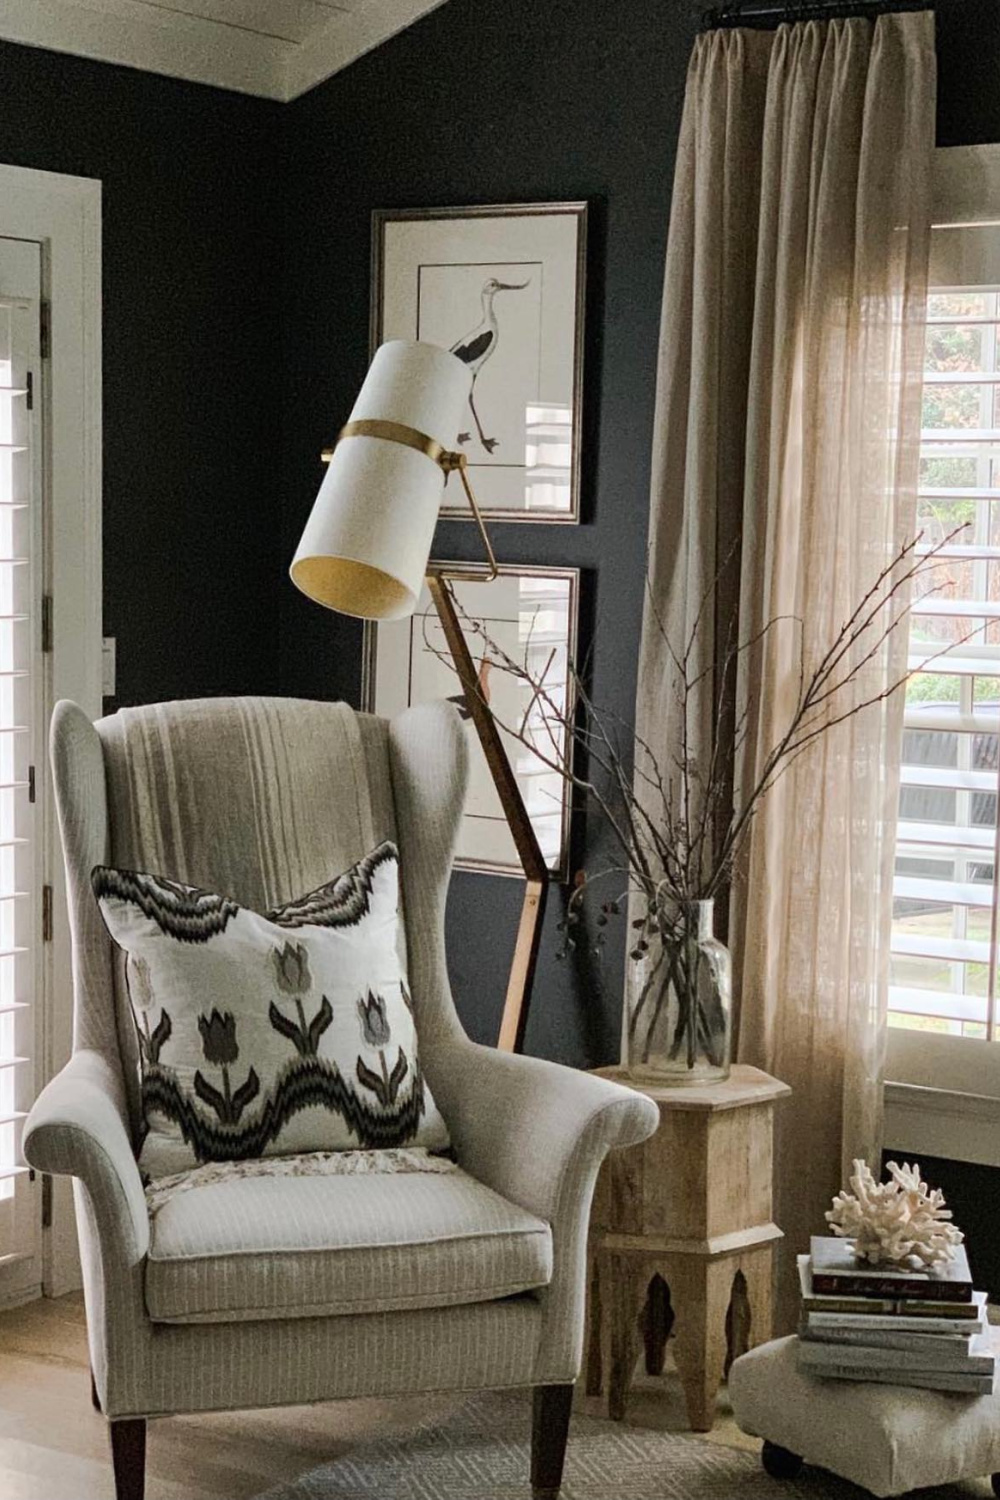 Iron Mountain (Benjamin Moore) soft black/brown paint on bedroom wall - Sherry Hart. Come explore Stunning Neutral and Natural Interiors. t#benjaminmoore #iron,ountain #paintcolors